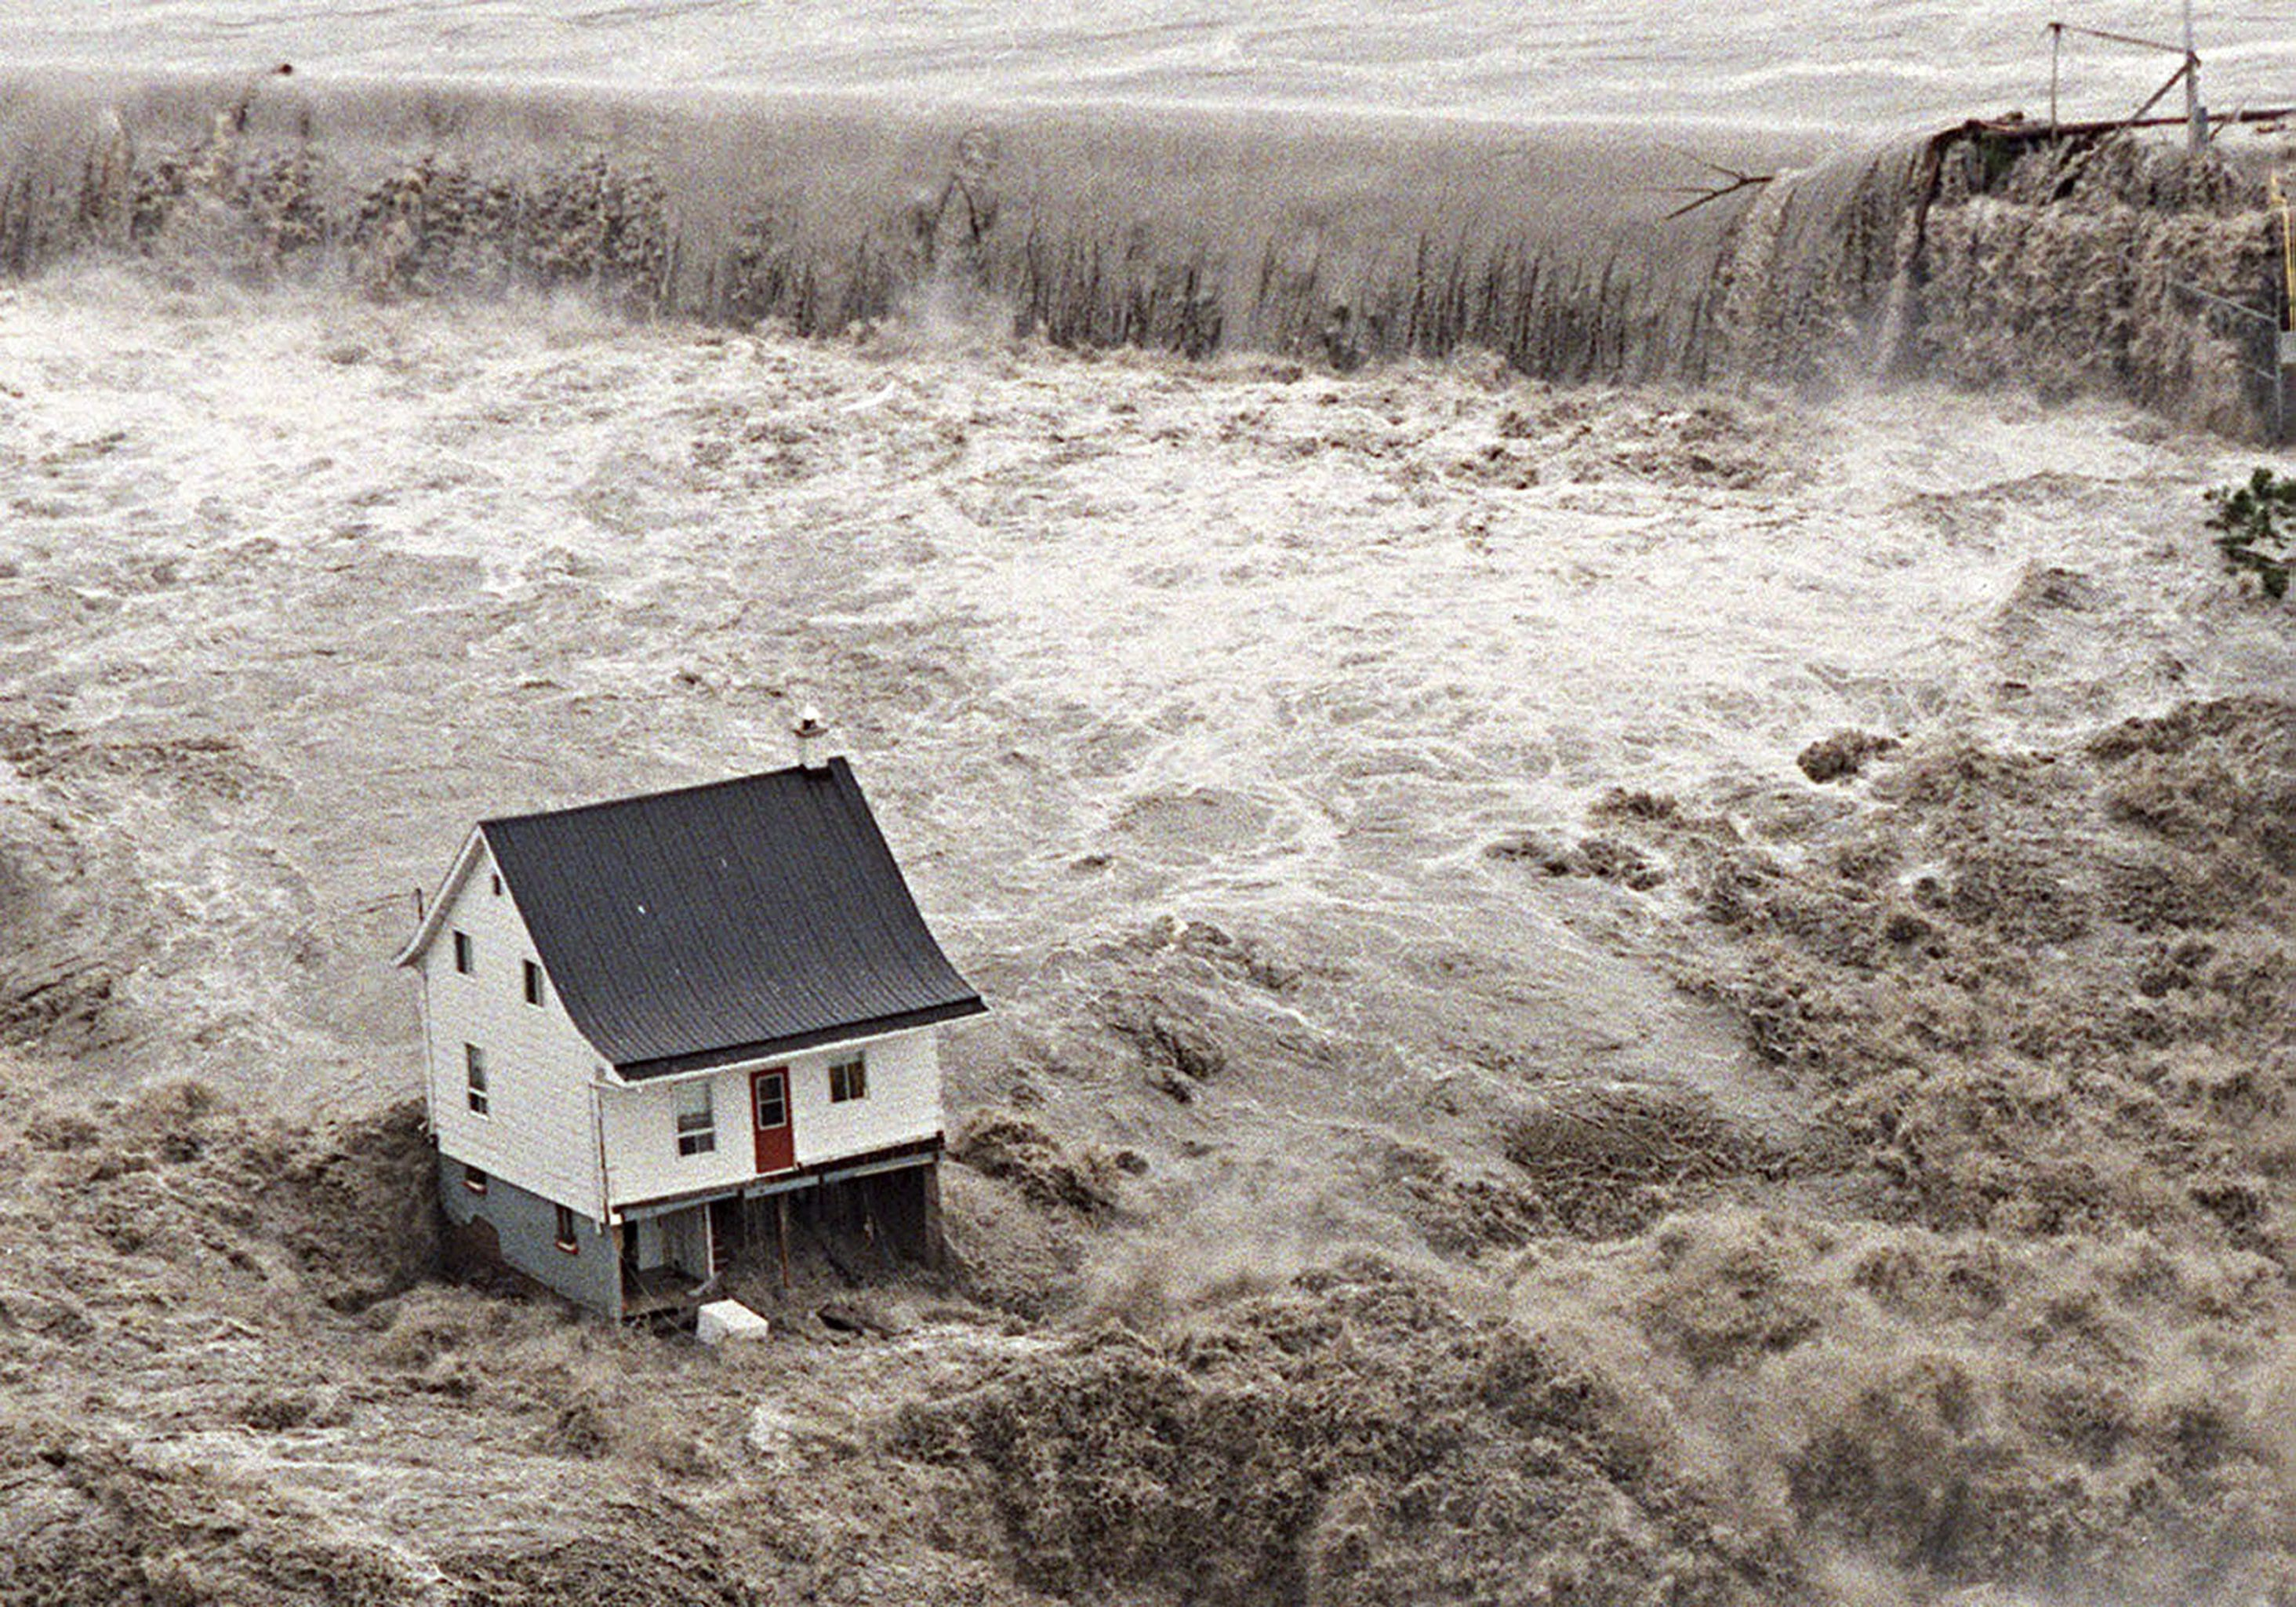 Chicoutimi River Flood, 21 July 1996